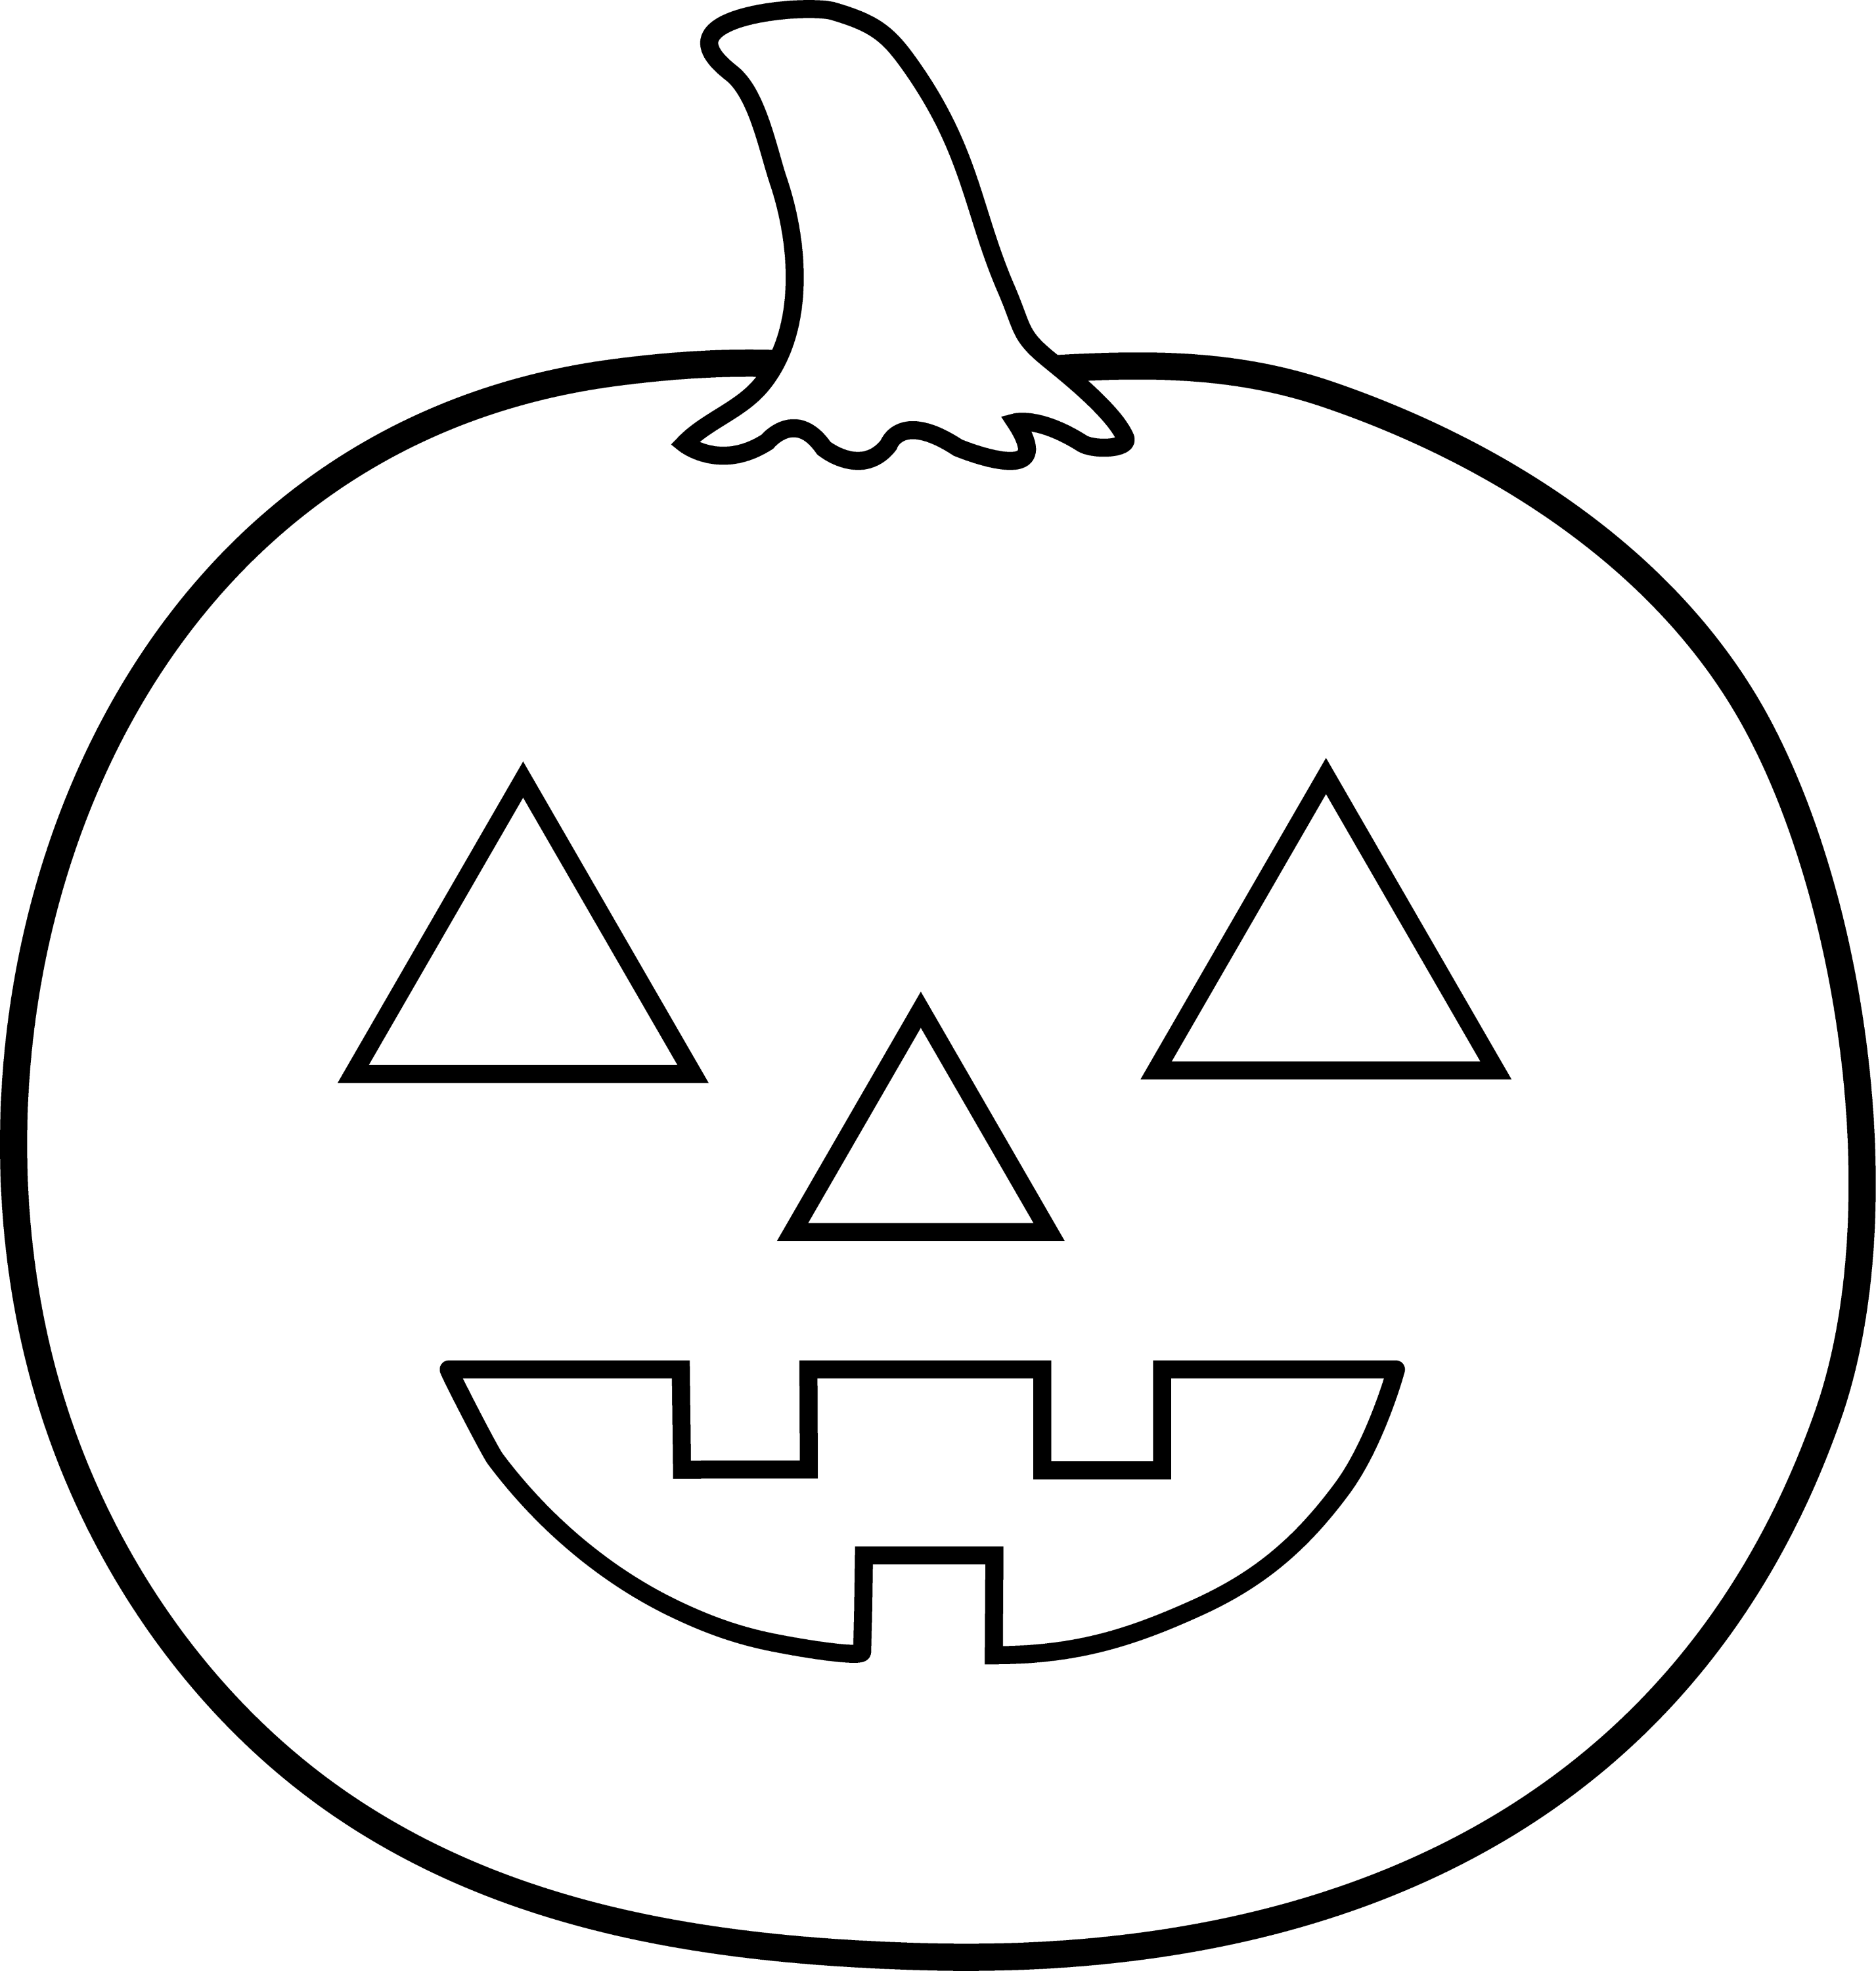 Halloween Jack O Lantern For Coloring